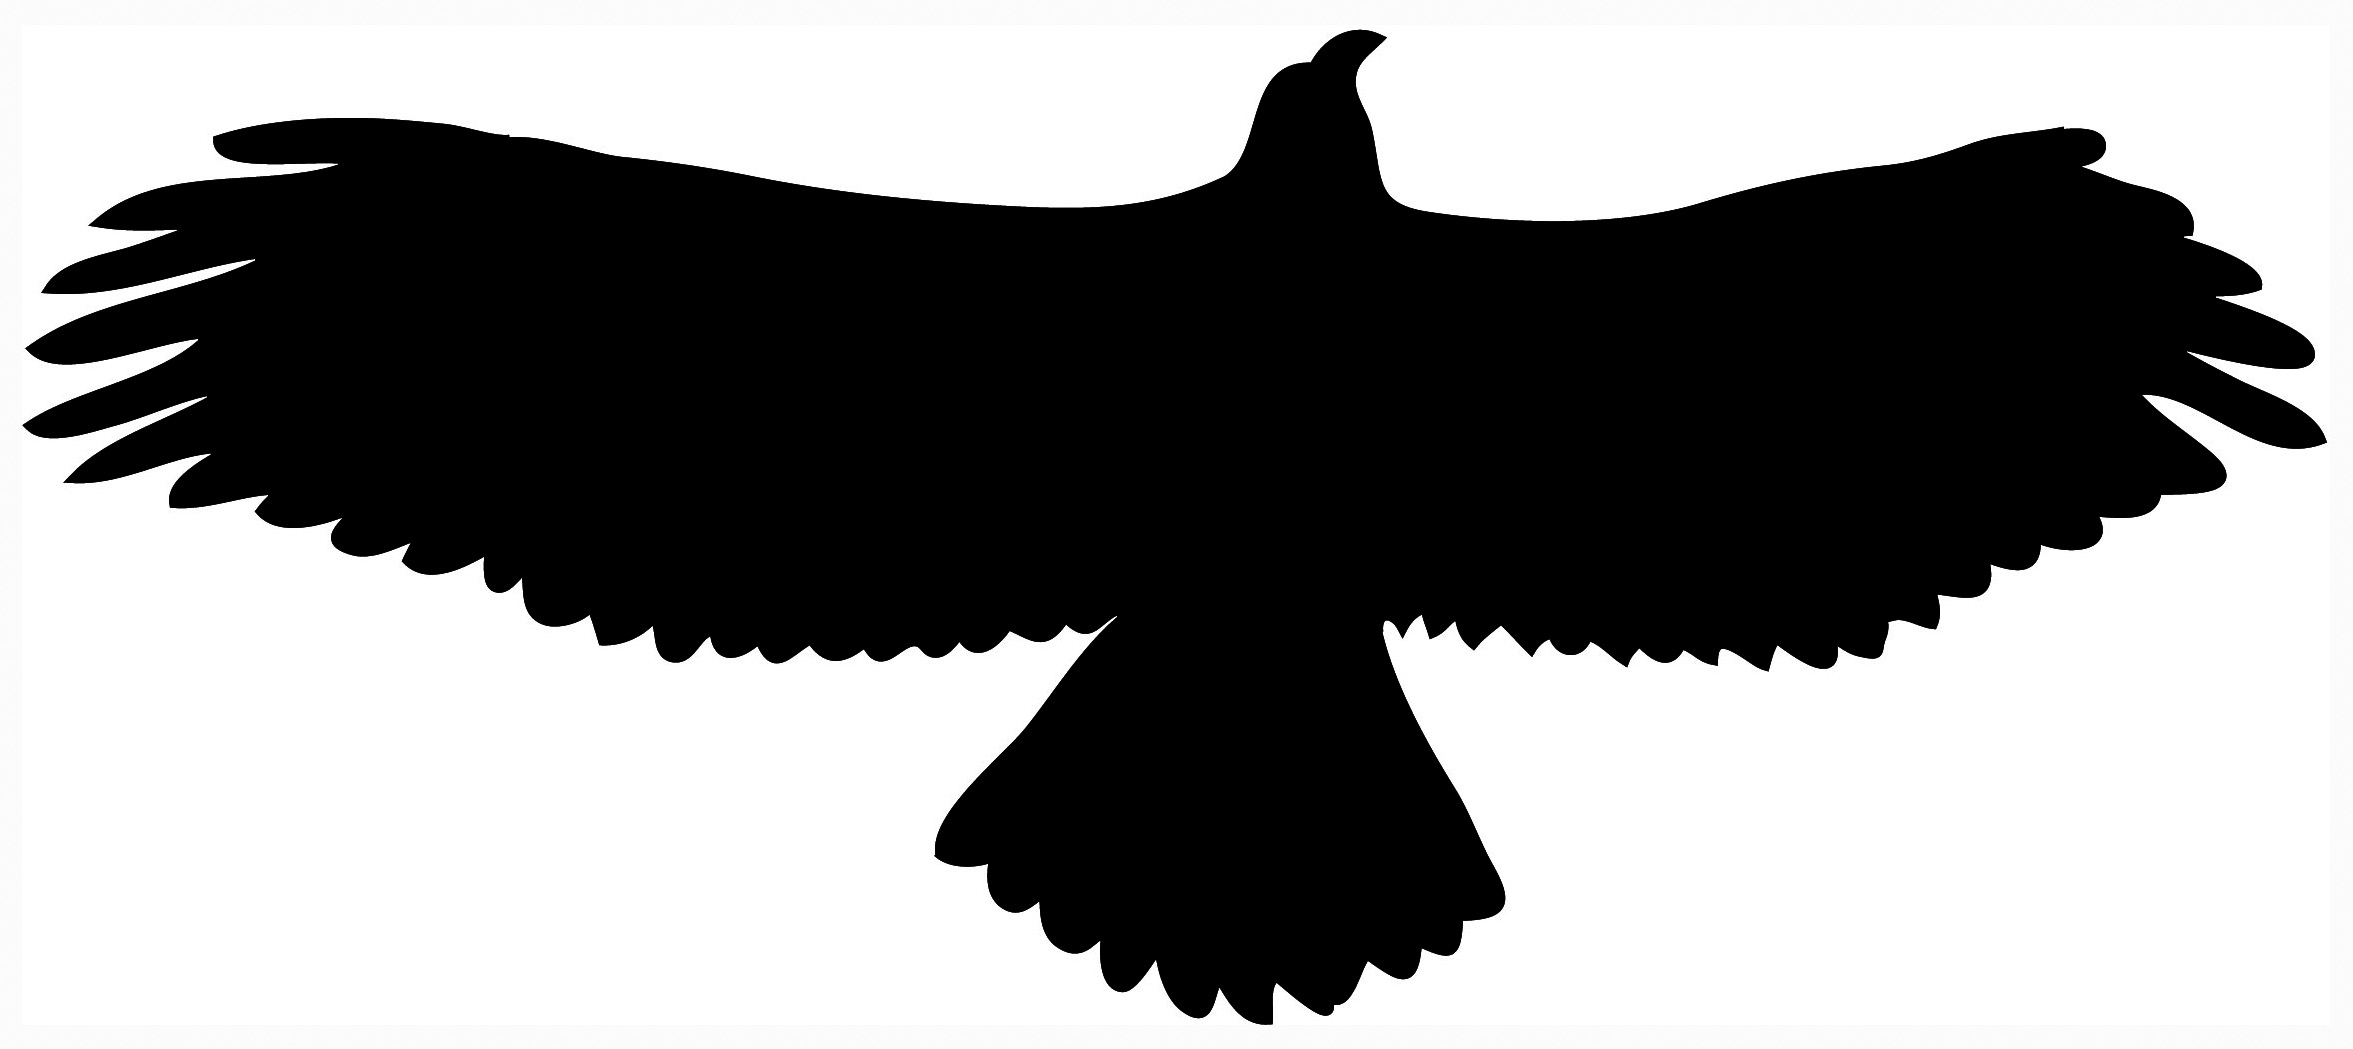 Eagle silhouette clipart free svg royalty free download Free Eagle Silhouette Cliparts, Download Free Clip Art, Free Clip ... svg royalty free download